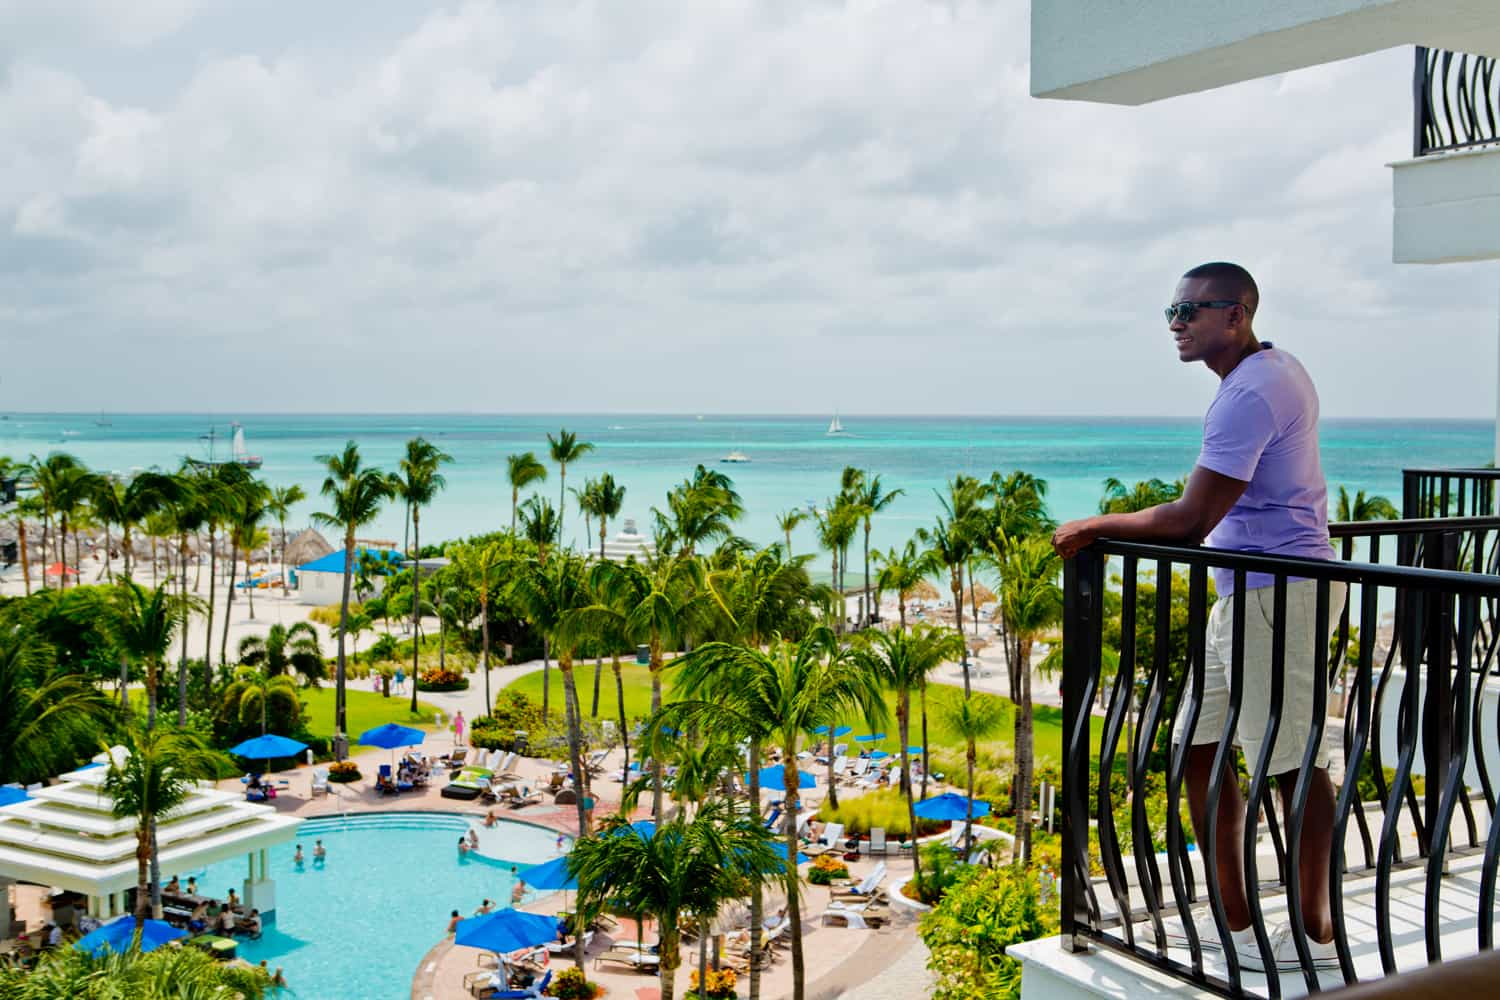 Aruba Marriott Resort  Man on Balcony - 30+ Unique Gifts For Men: 2017 Holiday Gift Guide